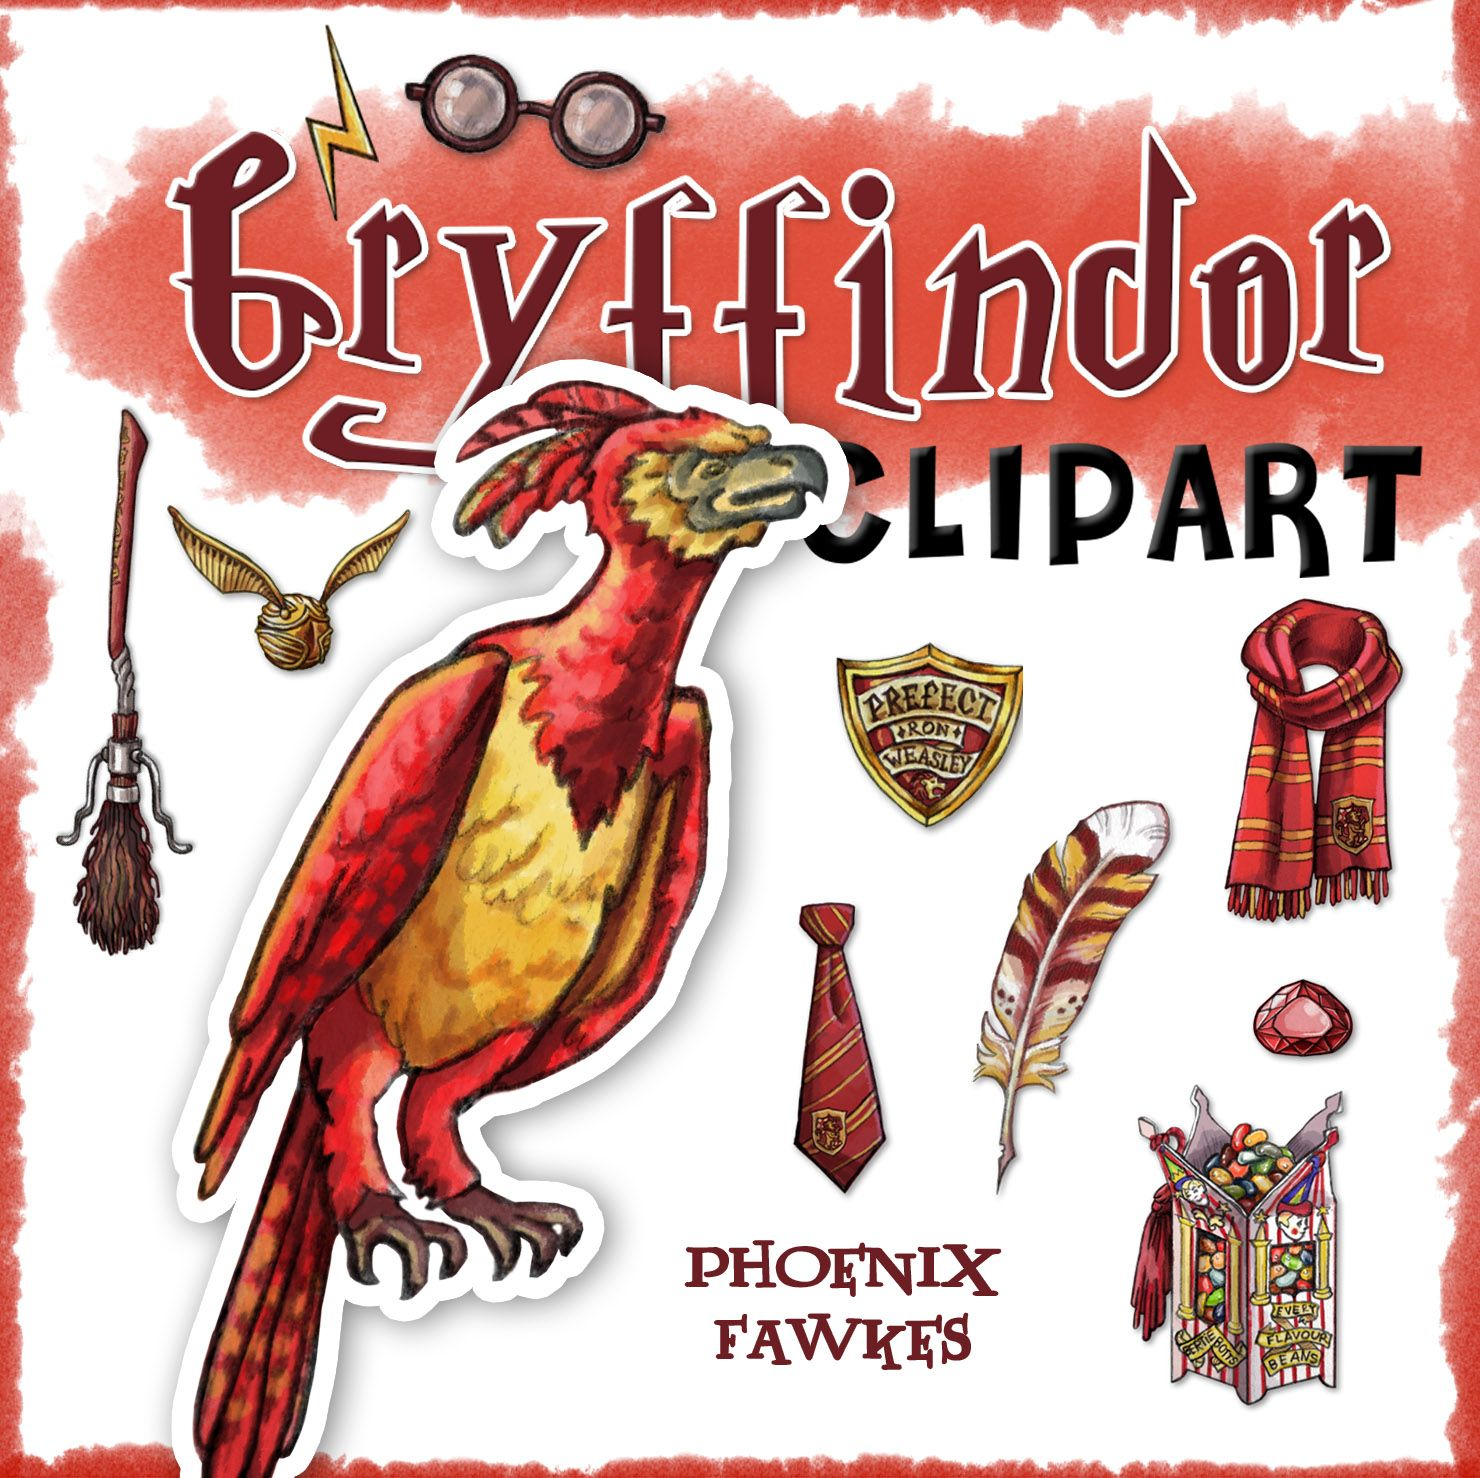 Clipart Of Harry Potter Gryffindoor House Transparent Clipart For Harry Potter Party De Harry Potter Party Decorations Harry Potter Planner Harry Potter Party